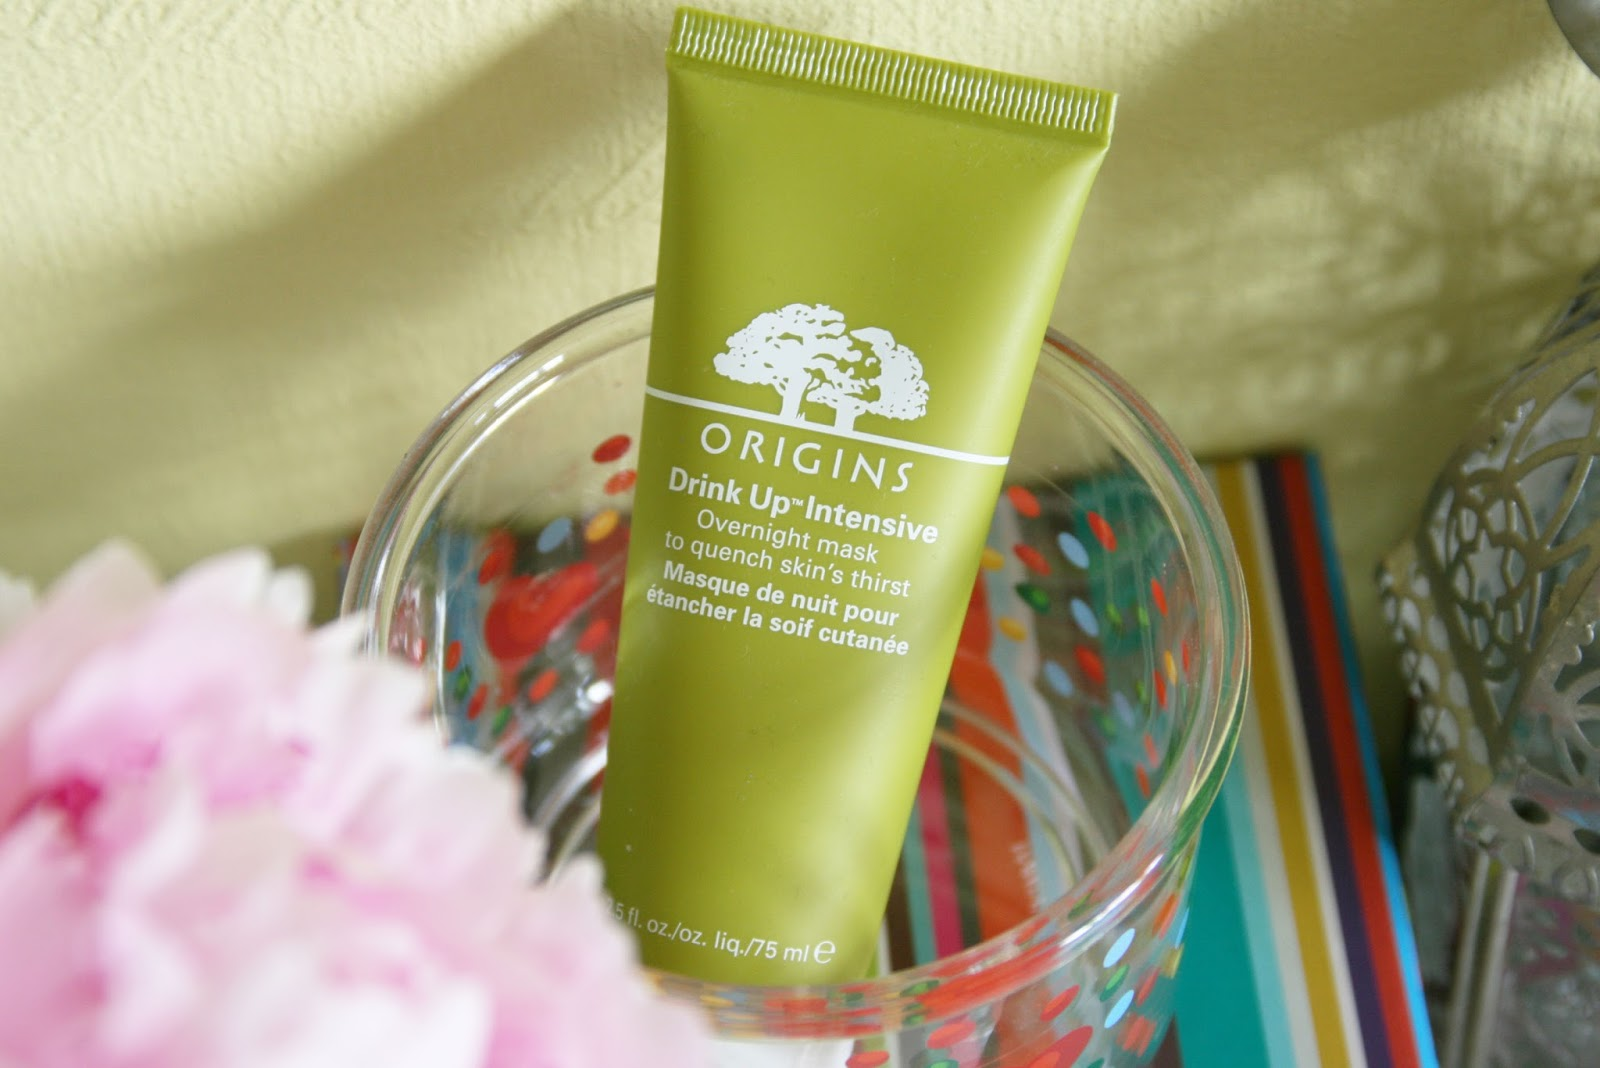 origins drink up intensive overnight mask how to apply